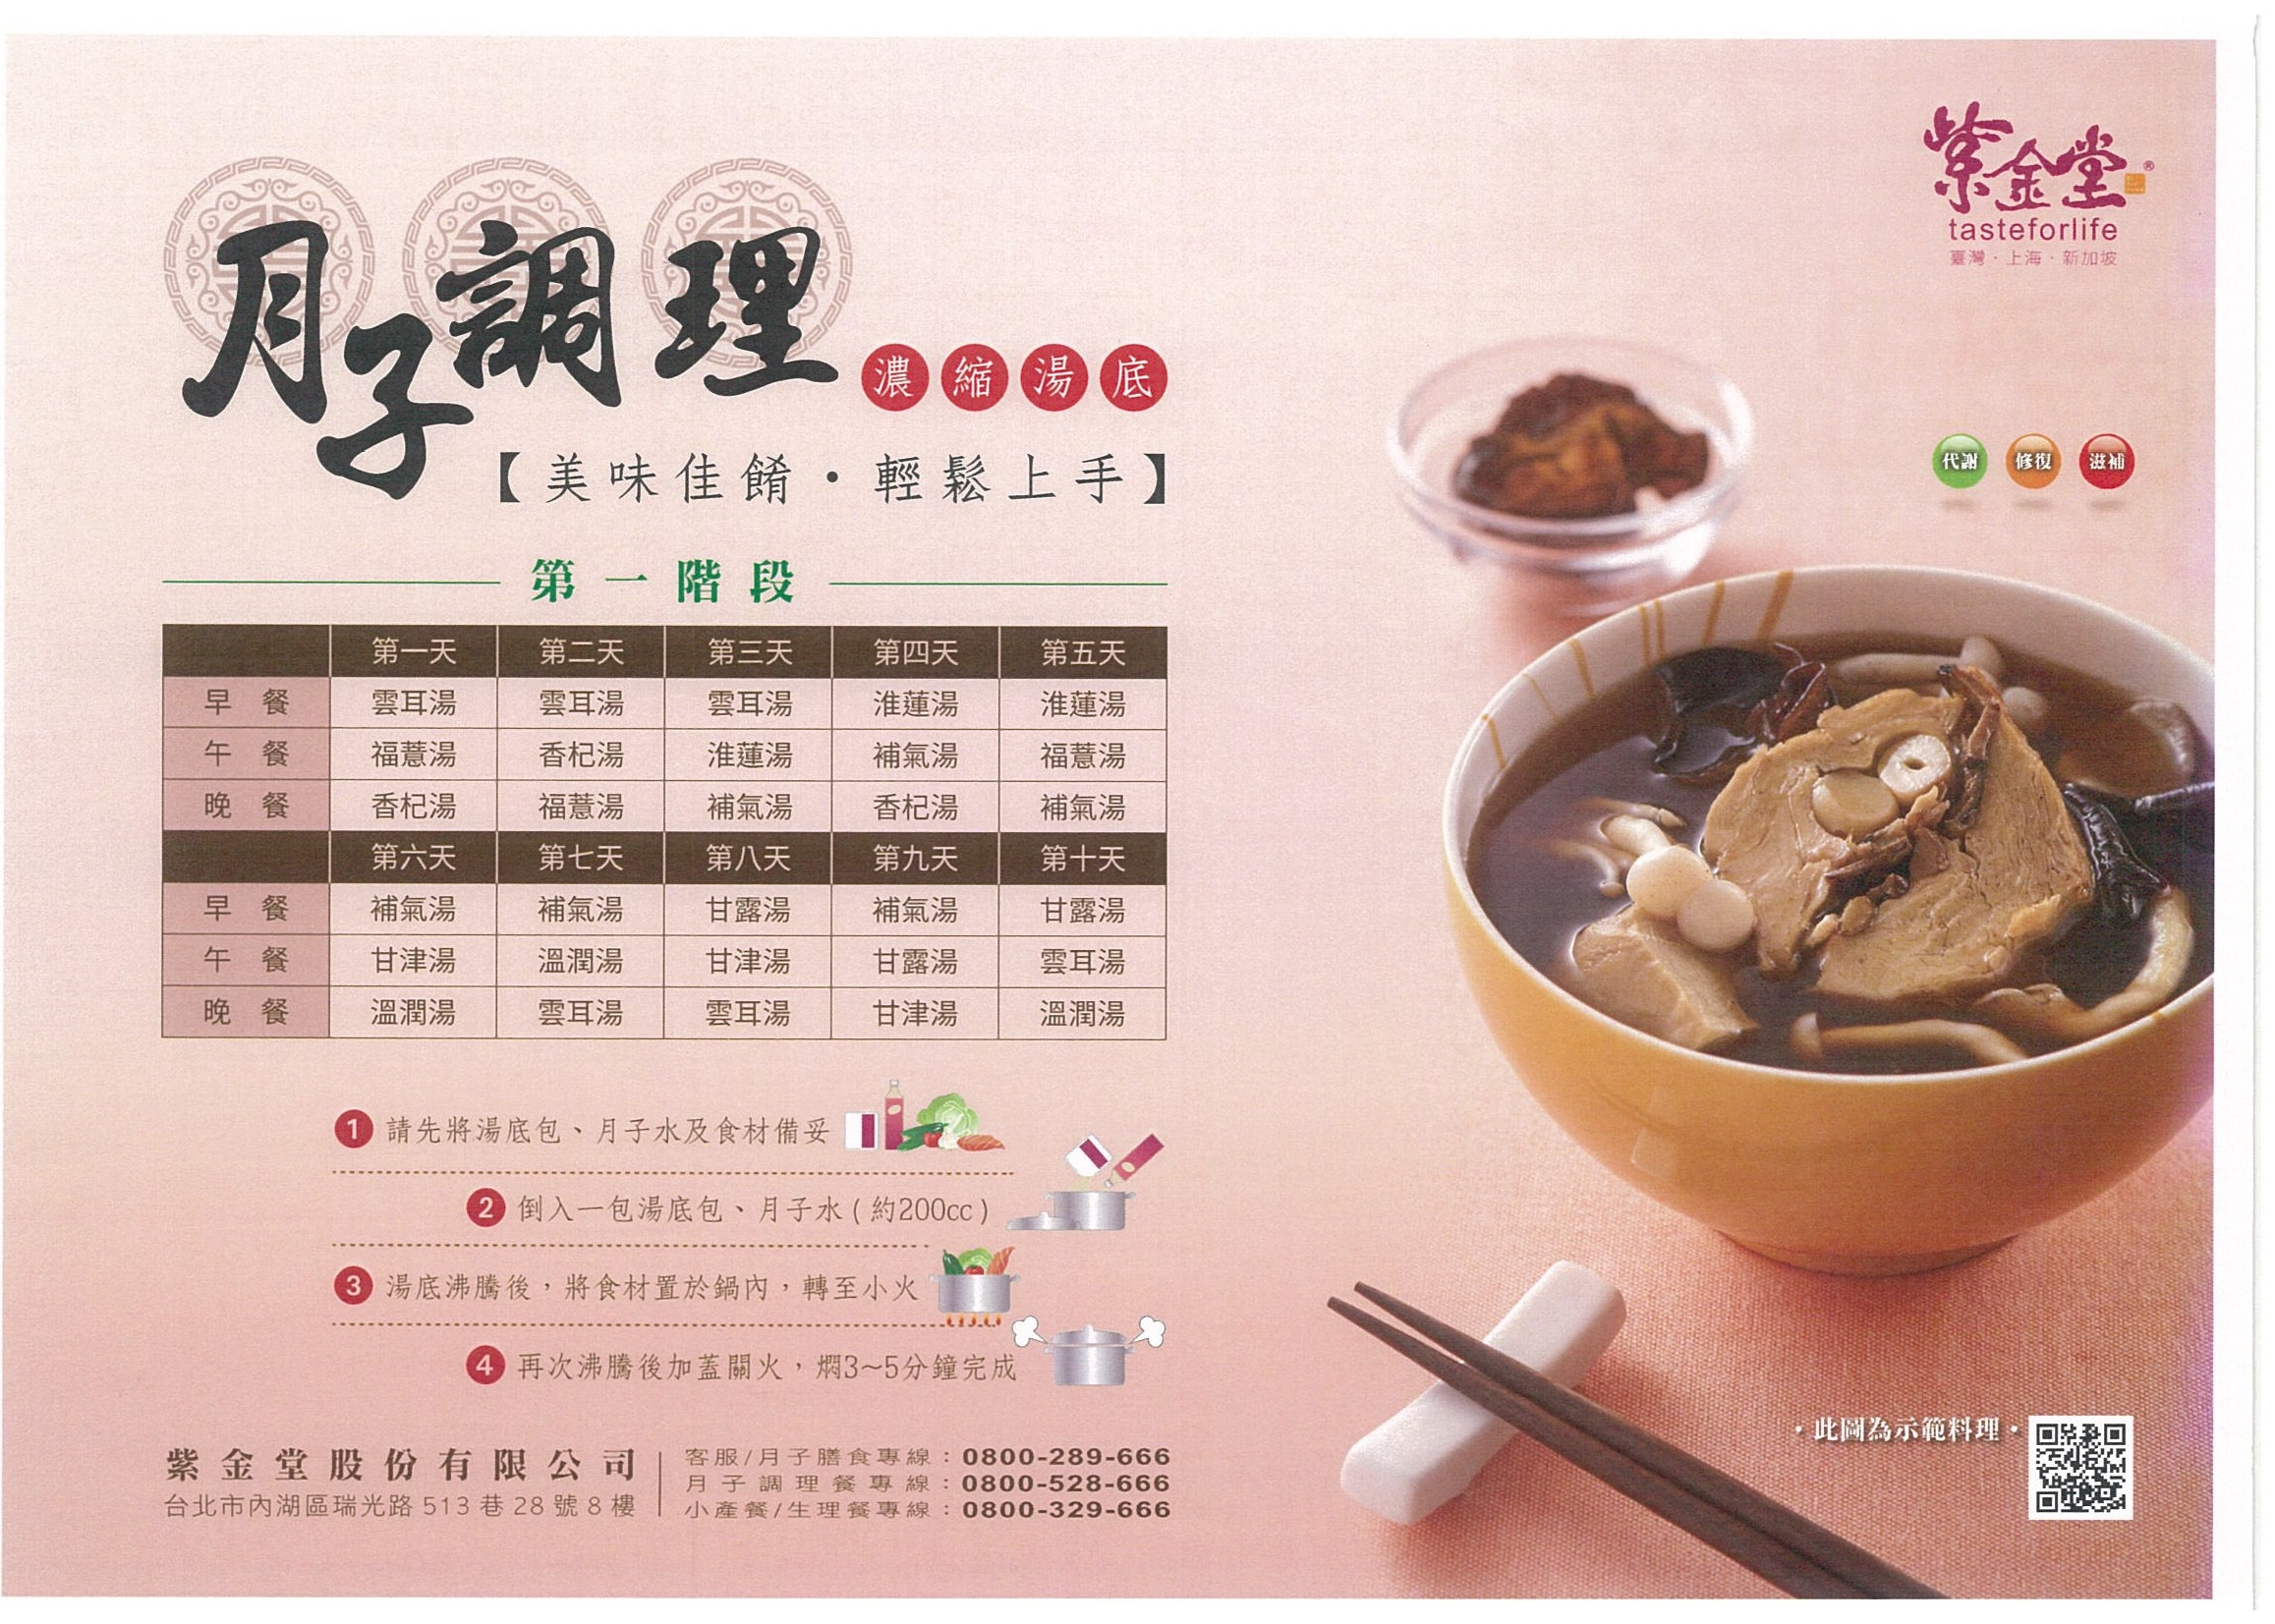 Zi jin tang confinement meal stage 1 detox zi jin tang confinement meal stage 1 detox forumfinder Images